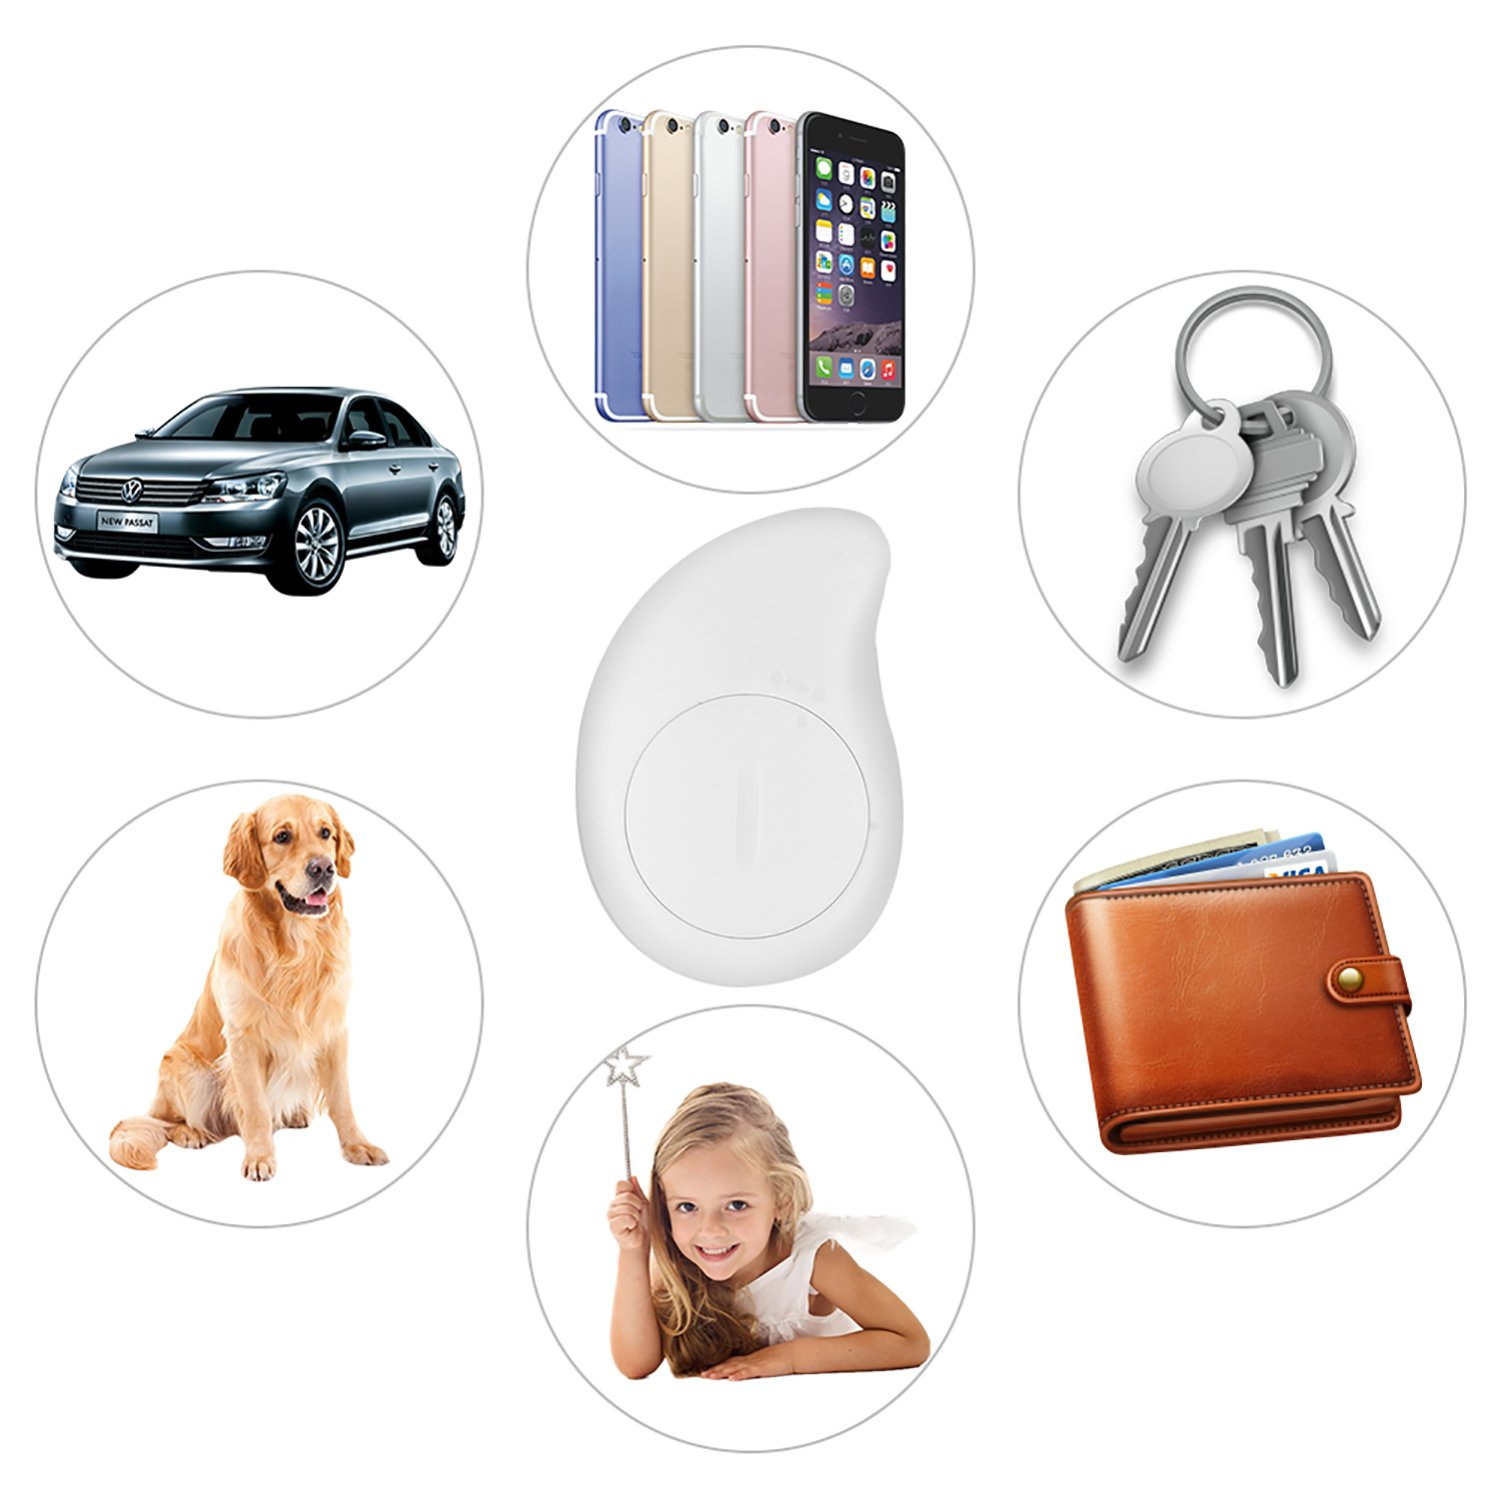 Ereon Smart Bluetooth GPS Tracker - 4 Pack Key Finder Locator Alarm Sensor GPS Tracker Wallet Bag Phone Pet Dog Cat Child Wireless Anti-Lost Finder Tracker IOS Android App for Old Man Kids Gift by Ereon (Image #2)